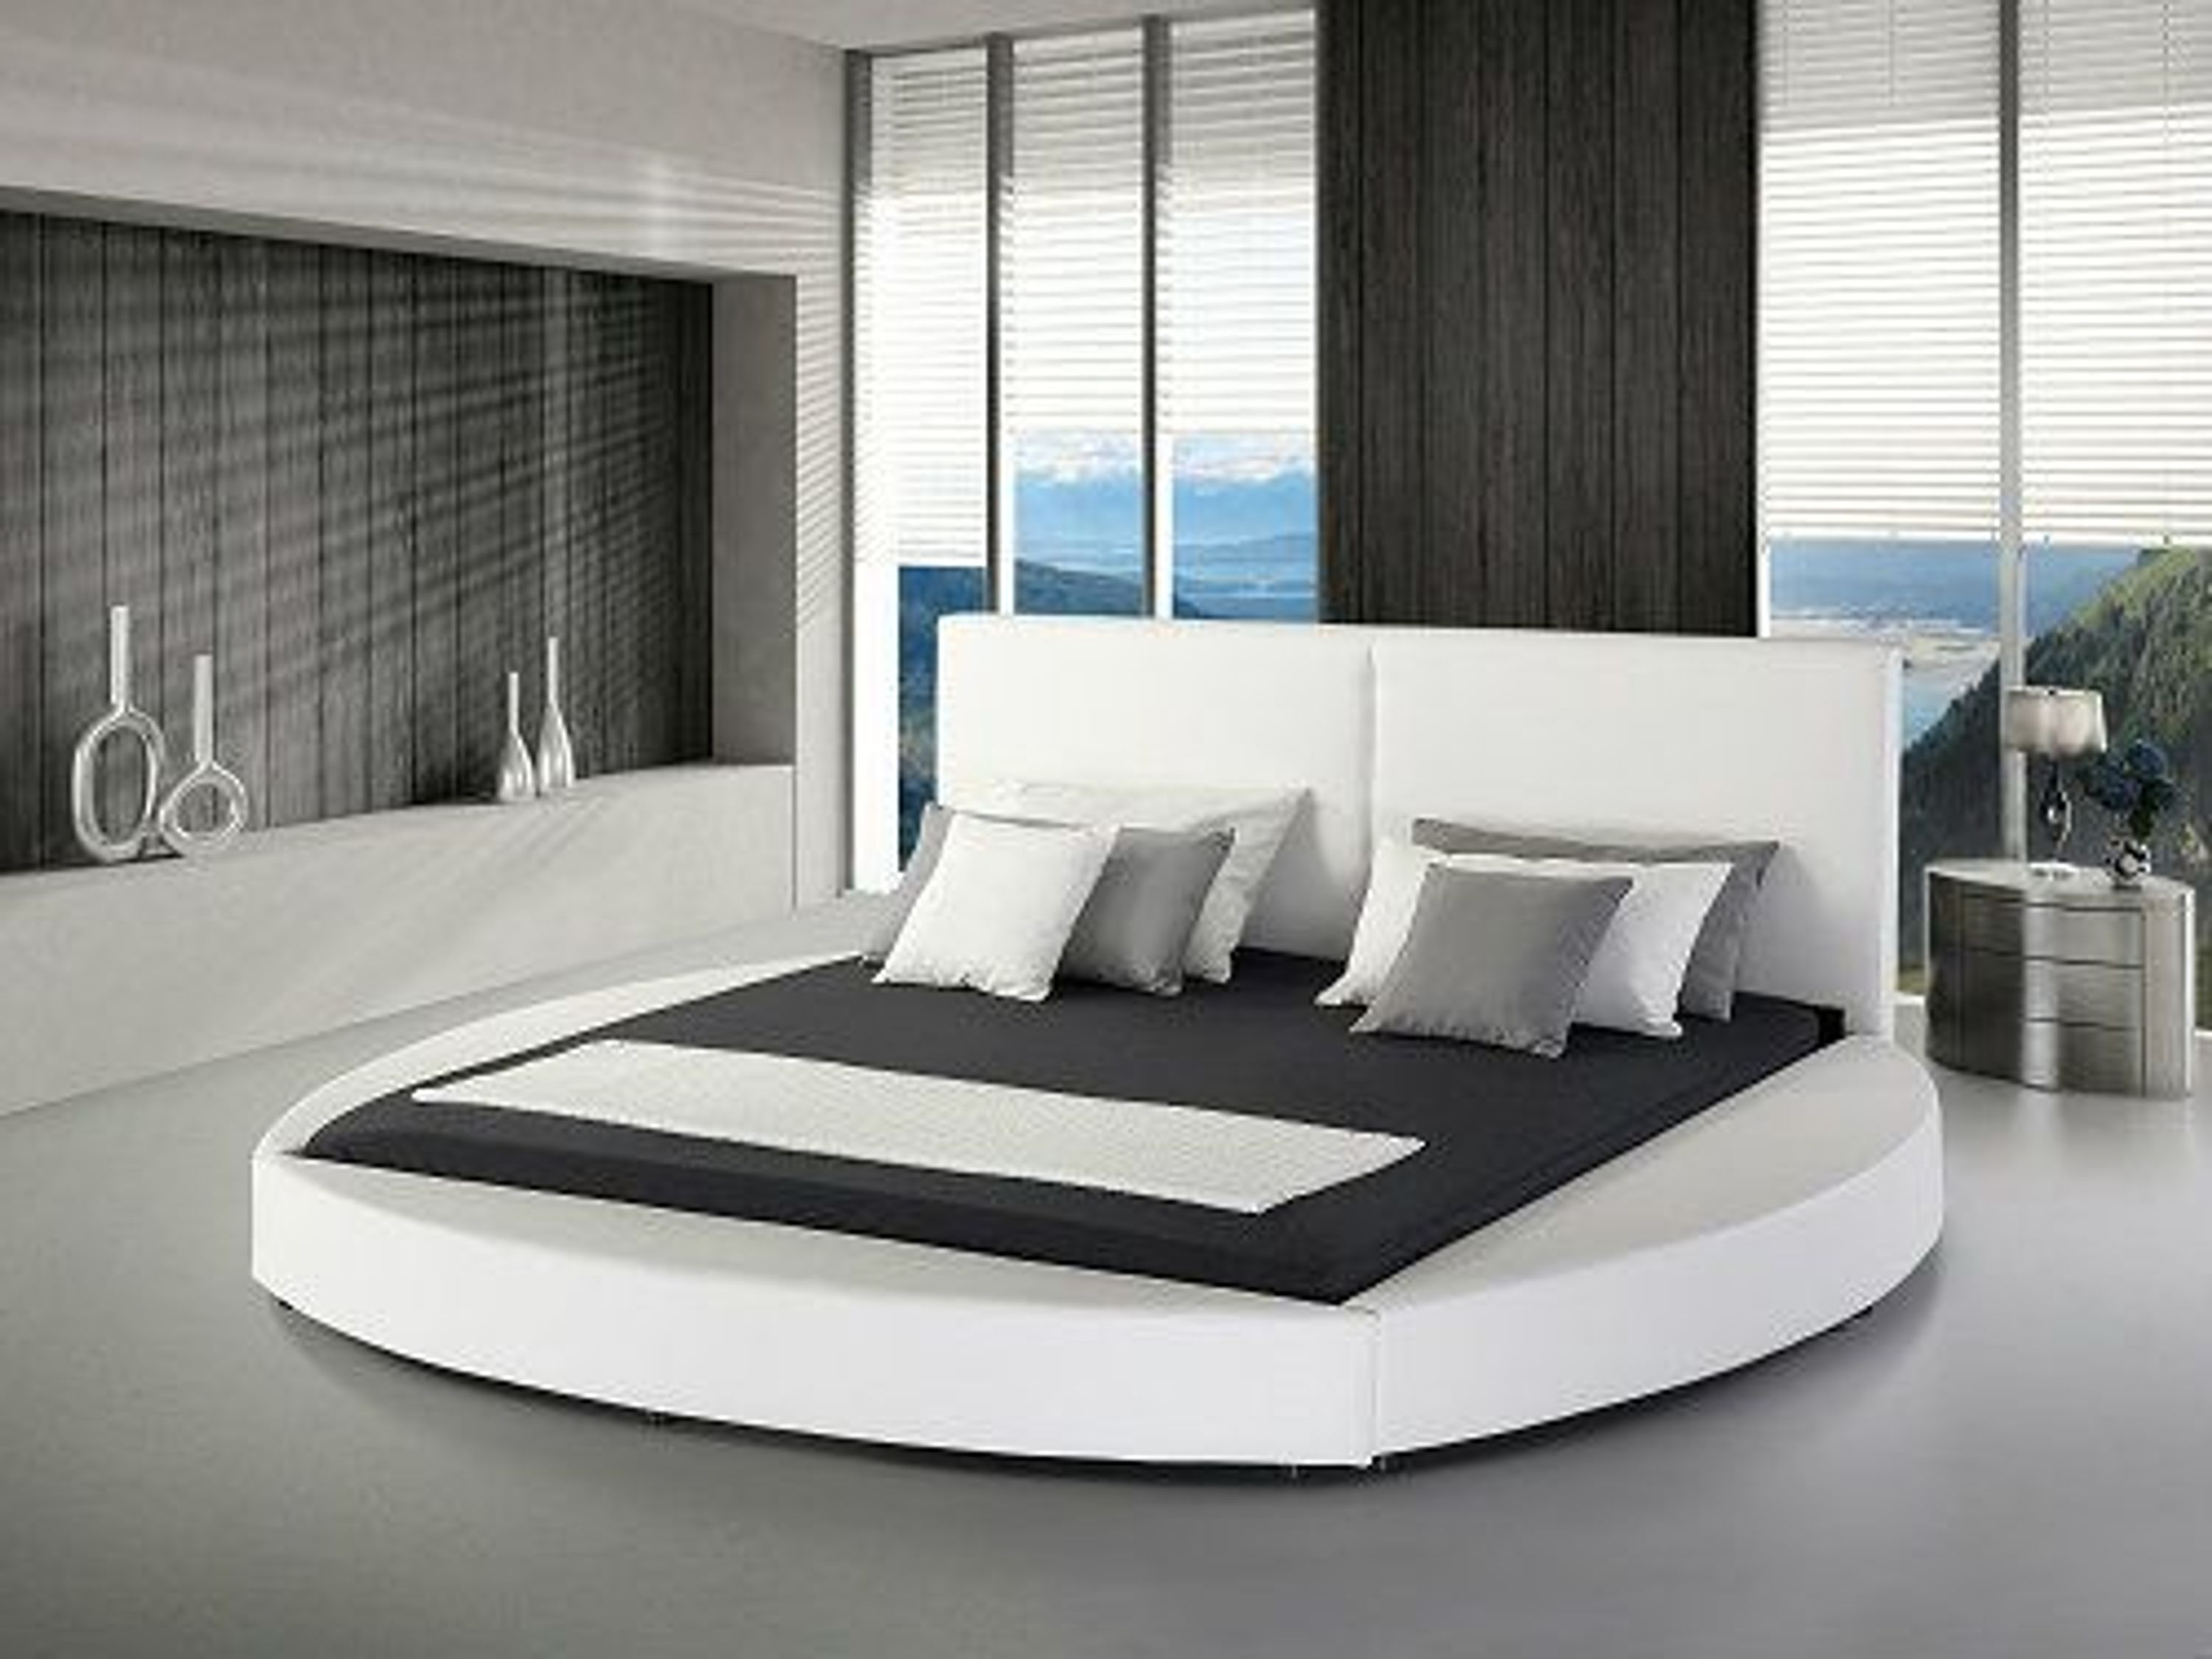 rundbett echtleder bett rund leder polsterbett lederbett schwarz weiss mit lattenrost kaufen bei. Black Bedroom Furniture Sets. Home Design Ideas